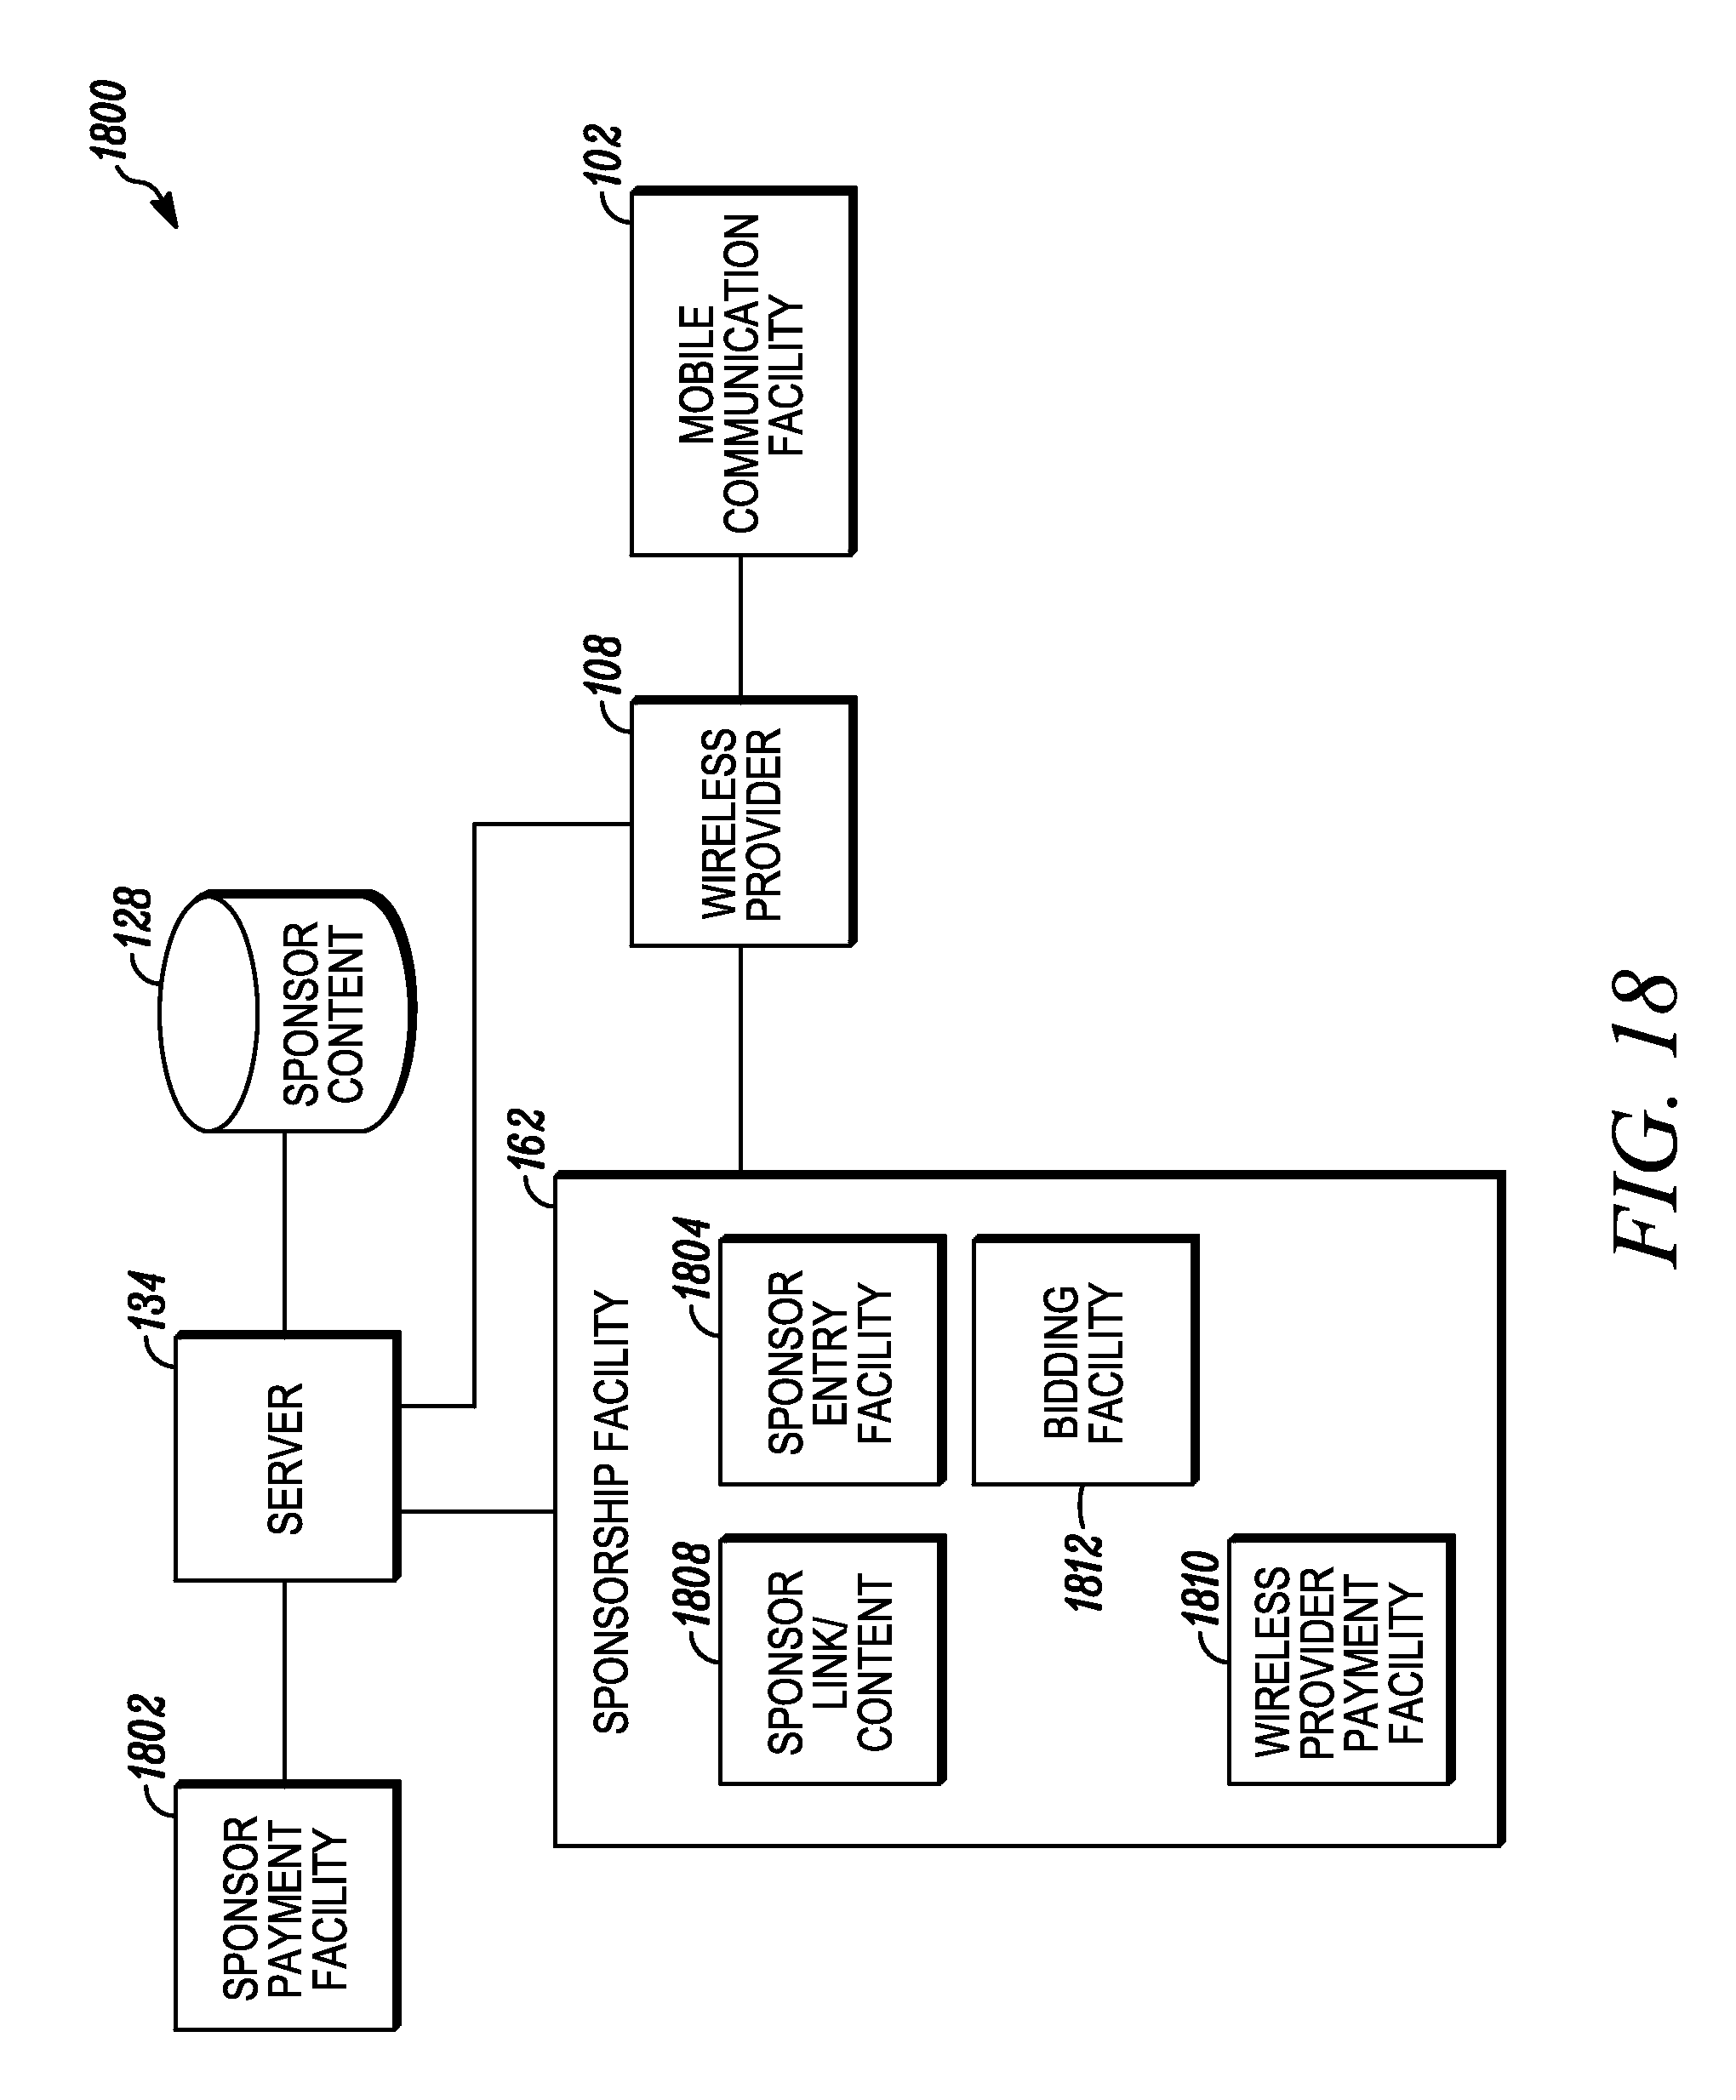 Patent Us 8311888 B2 Circuit Diagram Additionally Rf Transmitter On Untested Images